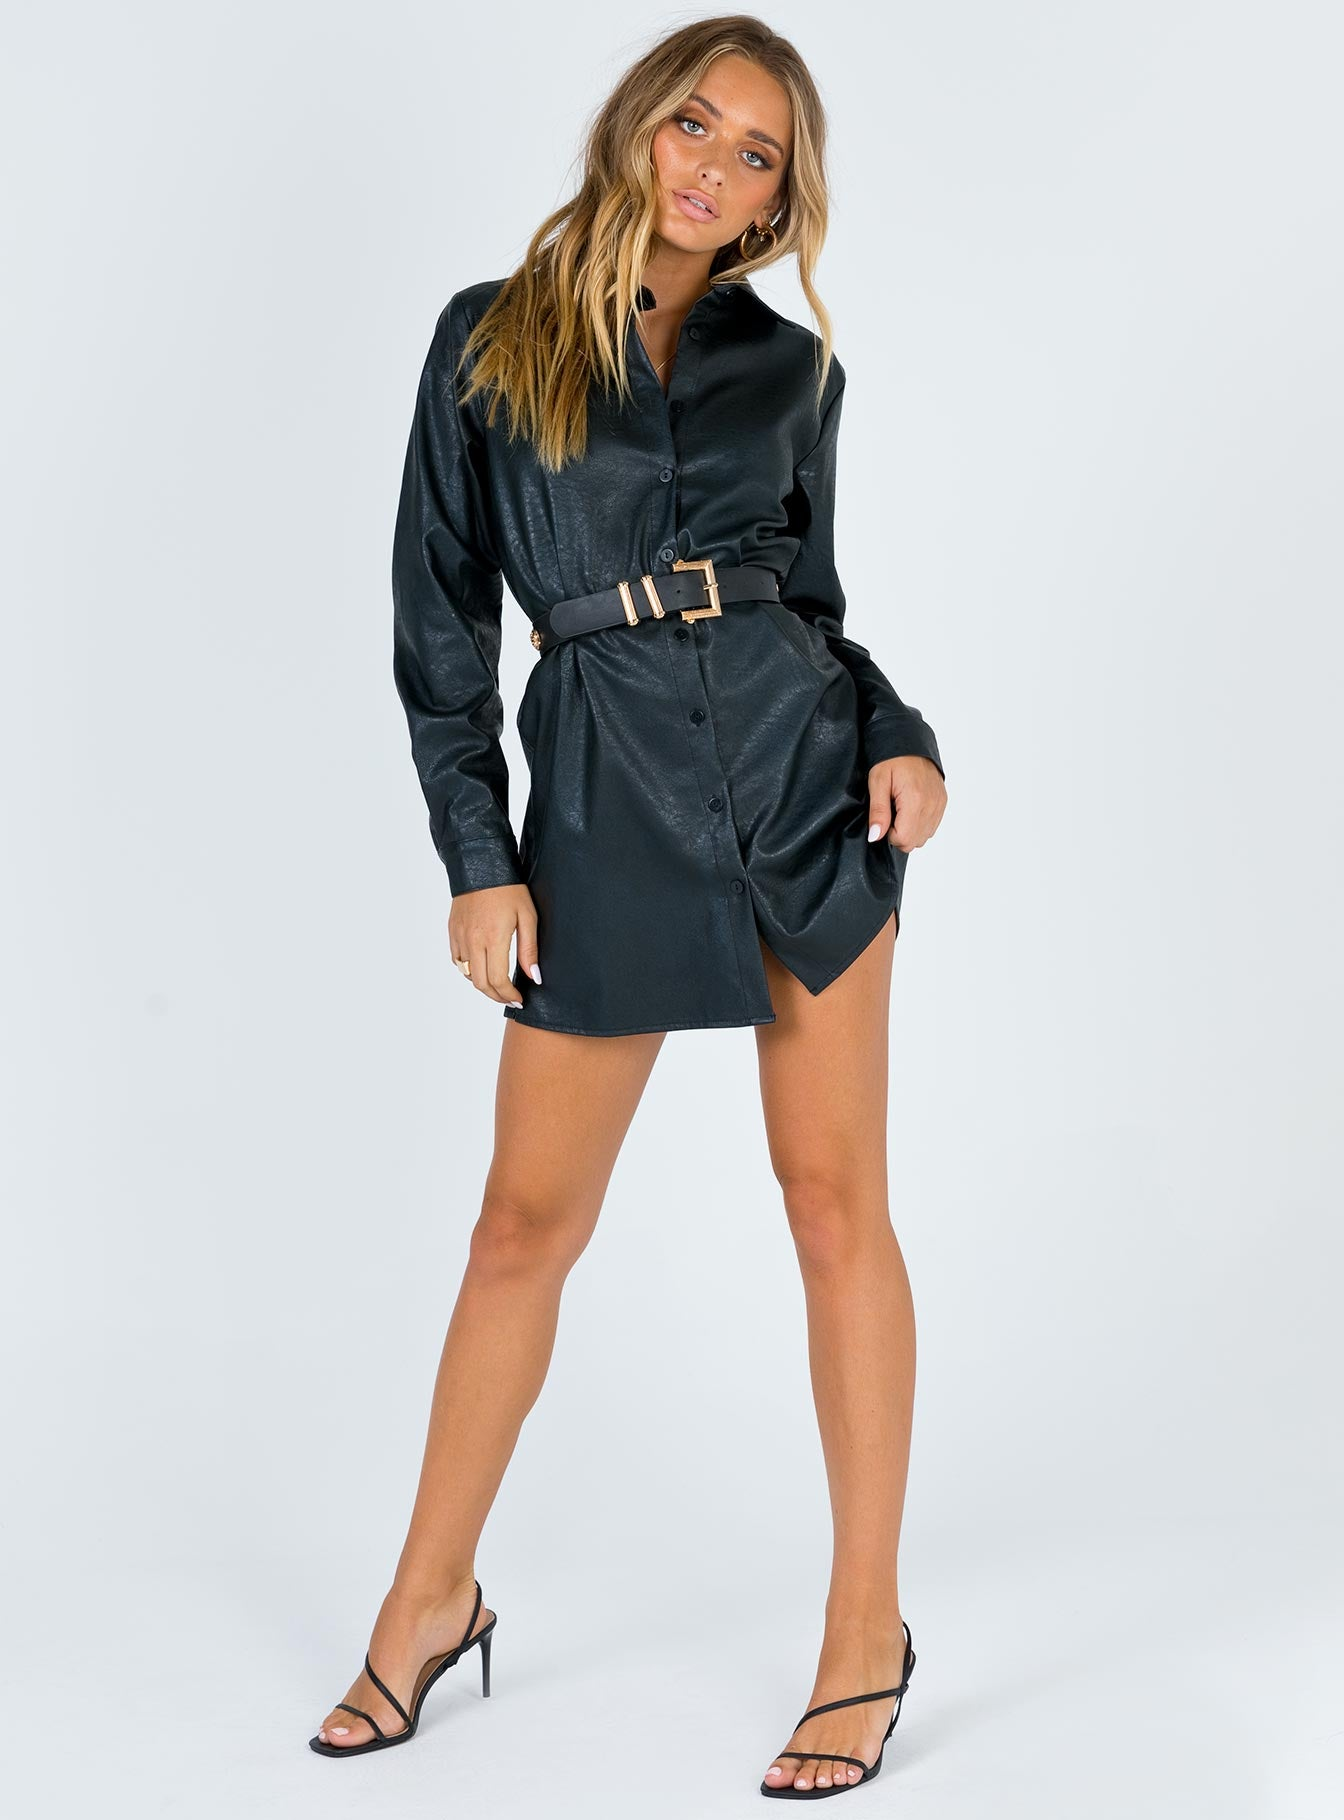 Marlow Shirt Mini Dress